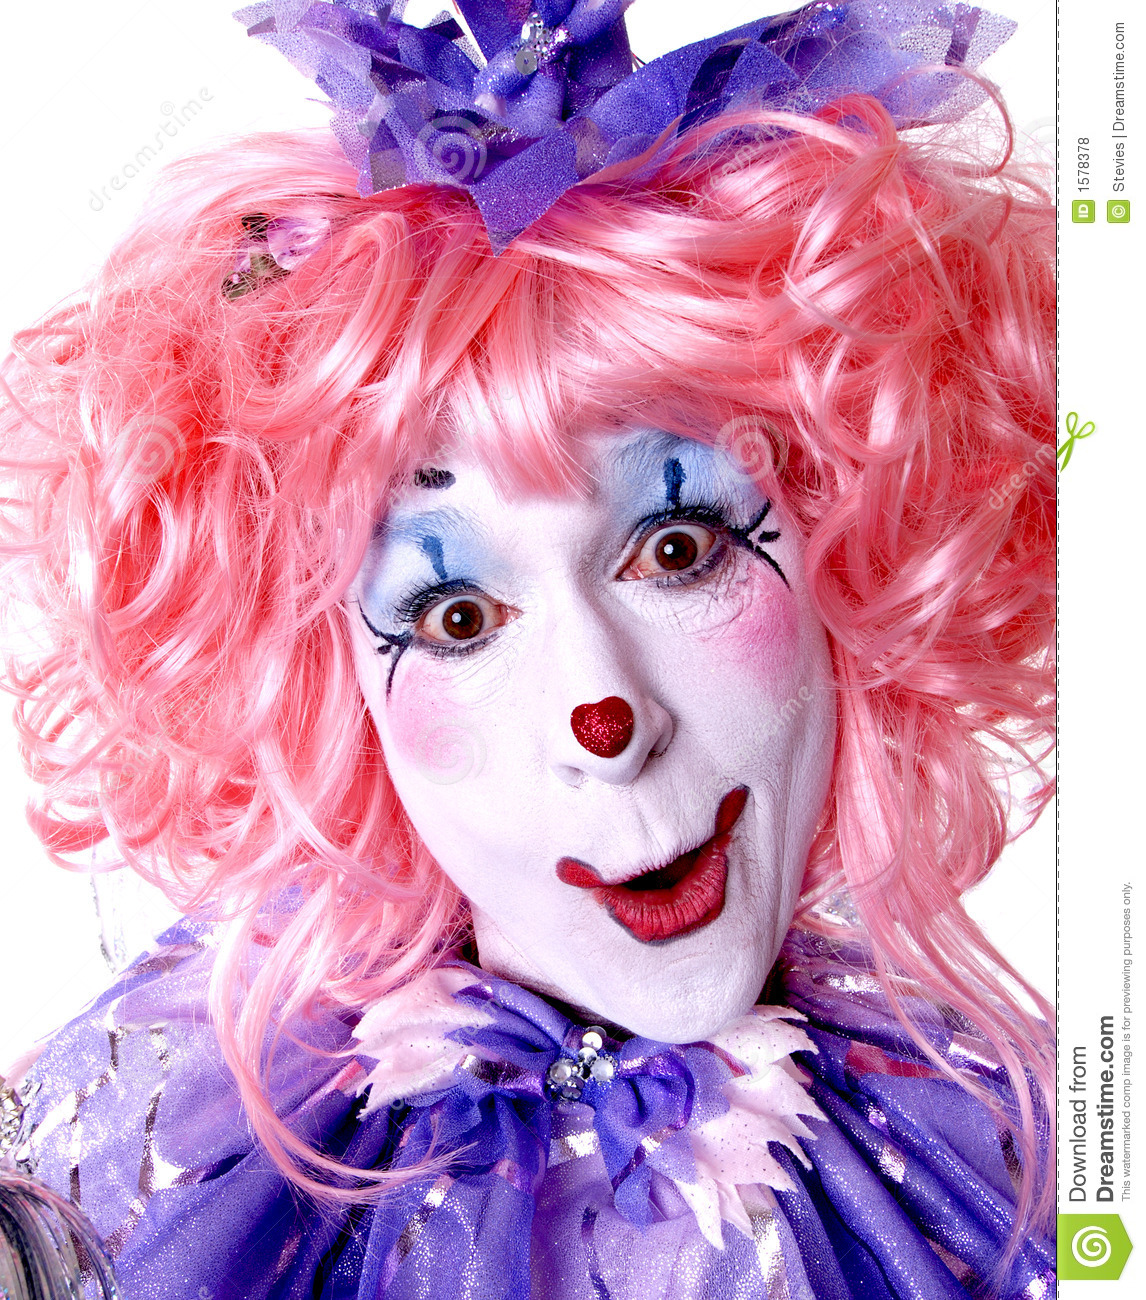 Female Fairy Clown Royalty Free Stock Photos Image 1578378